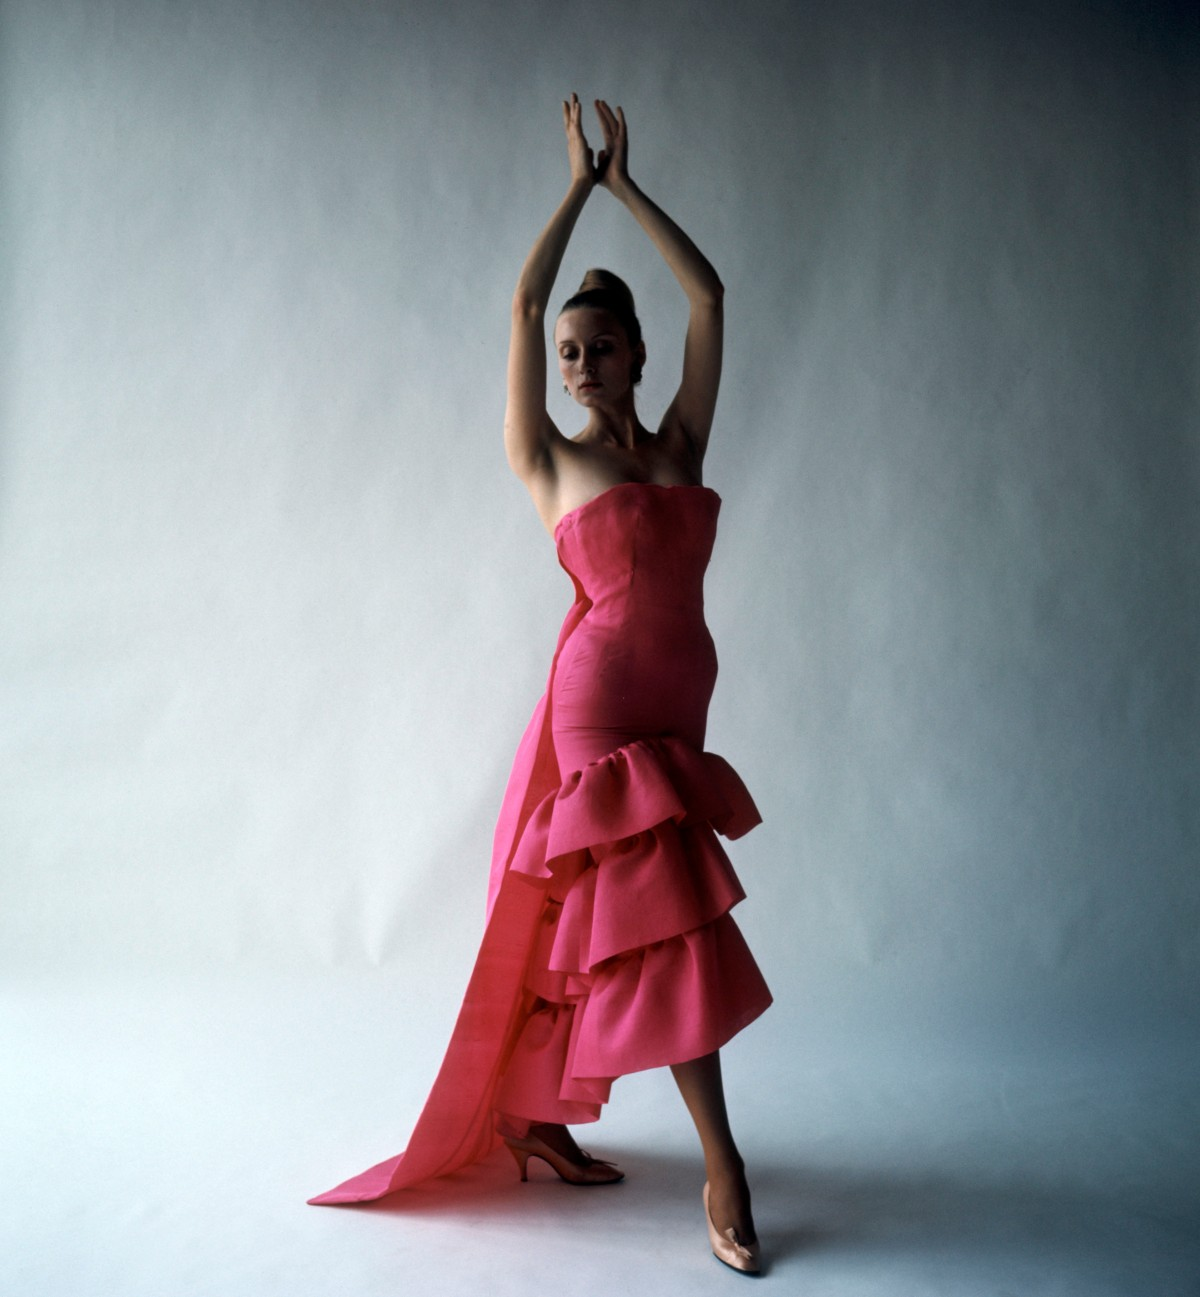 flamenco-style-evening-dress-cristobal-balenciaga-paris-1961-photograph-by-cecil-beaton-1971-cecil-beaton-studio-archive-at-sothebys